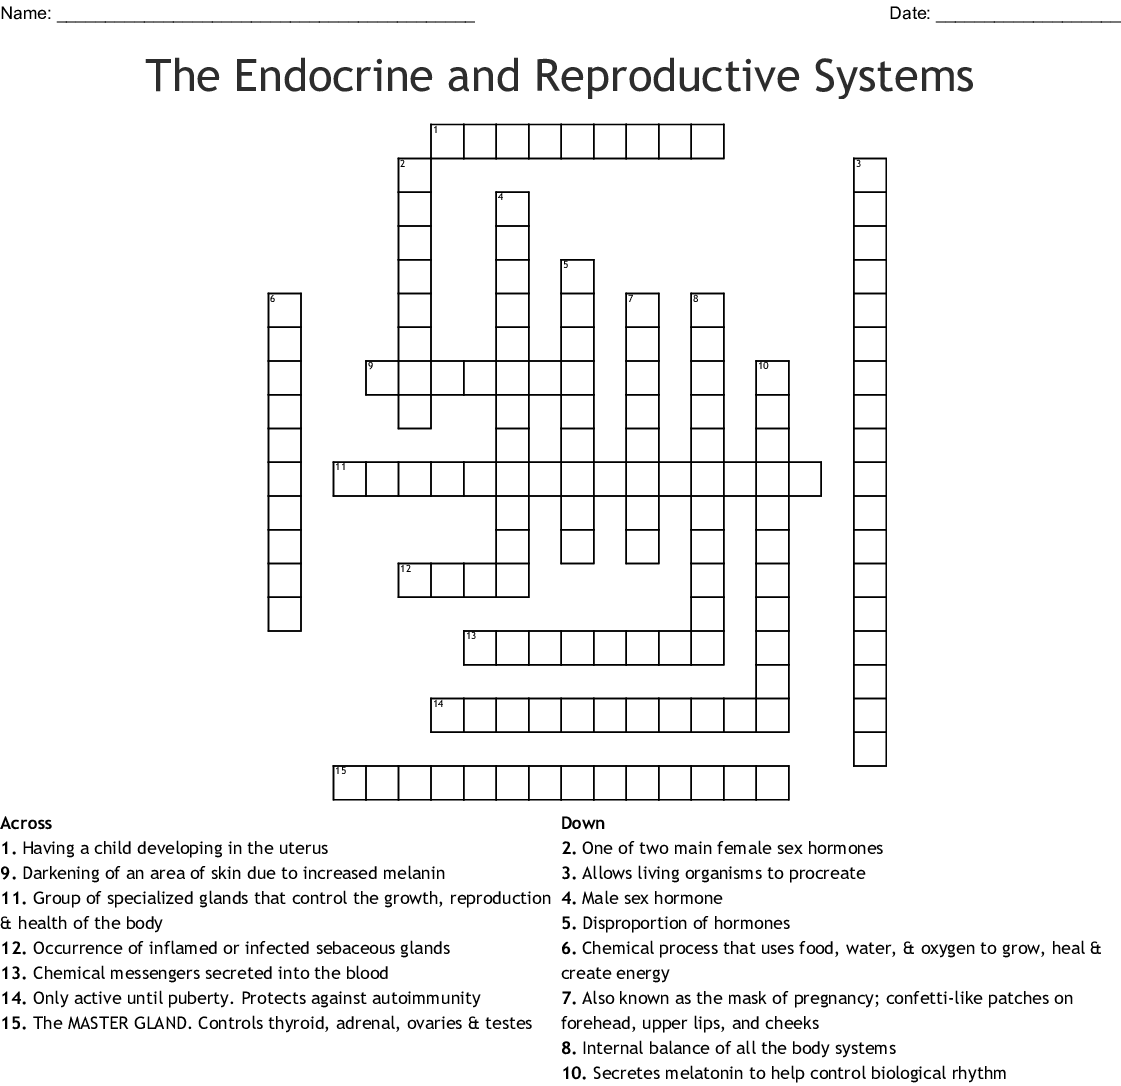 The Endocrine And Reproductive Systems Crossword